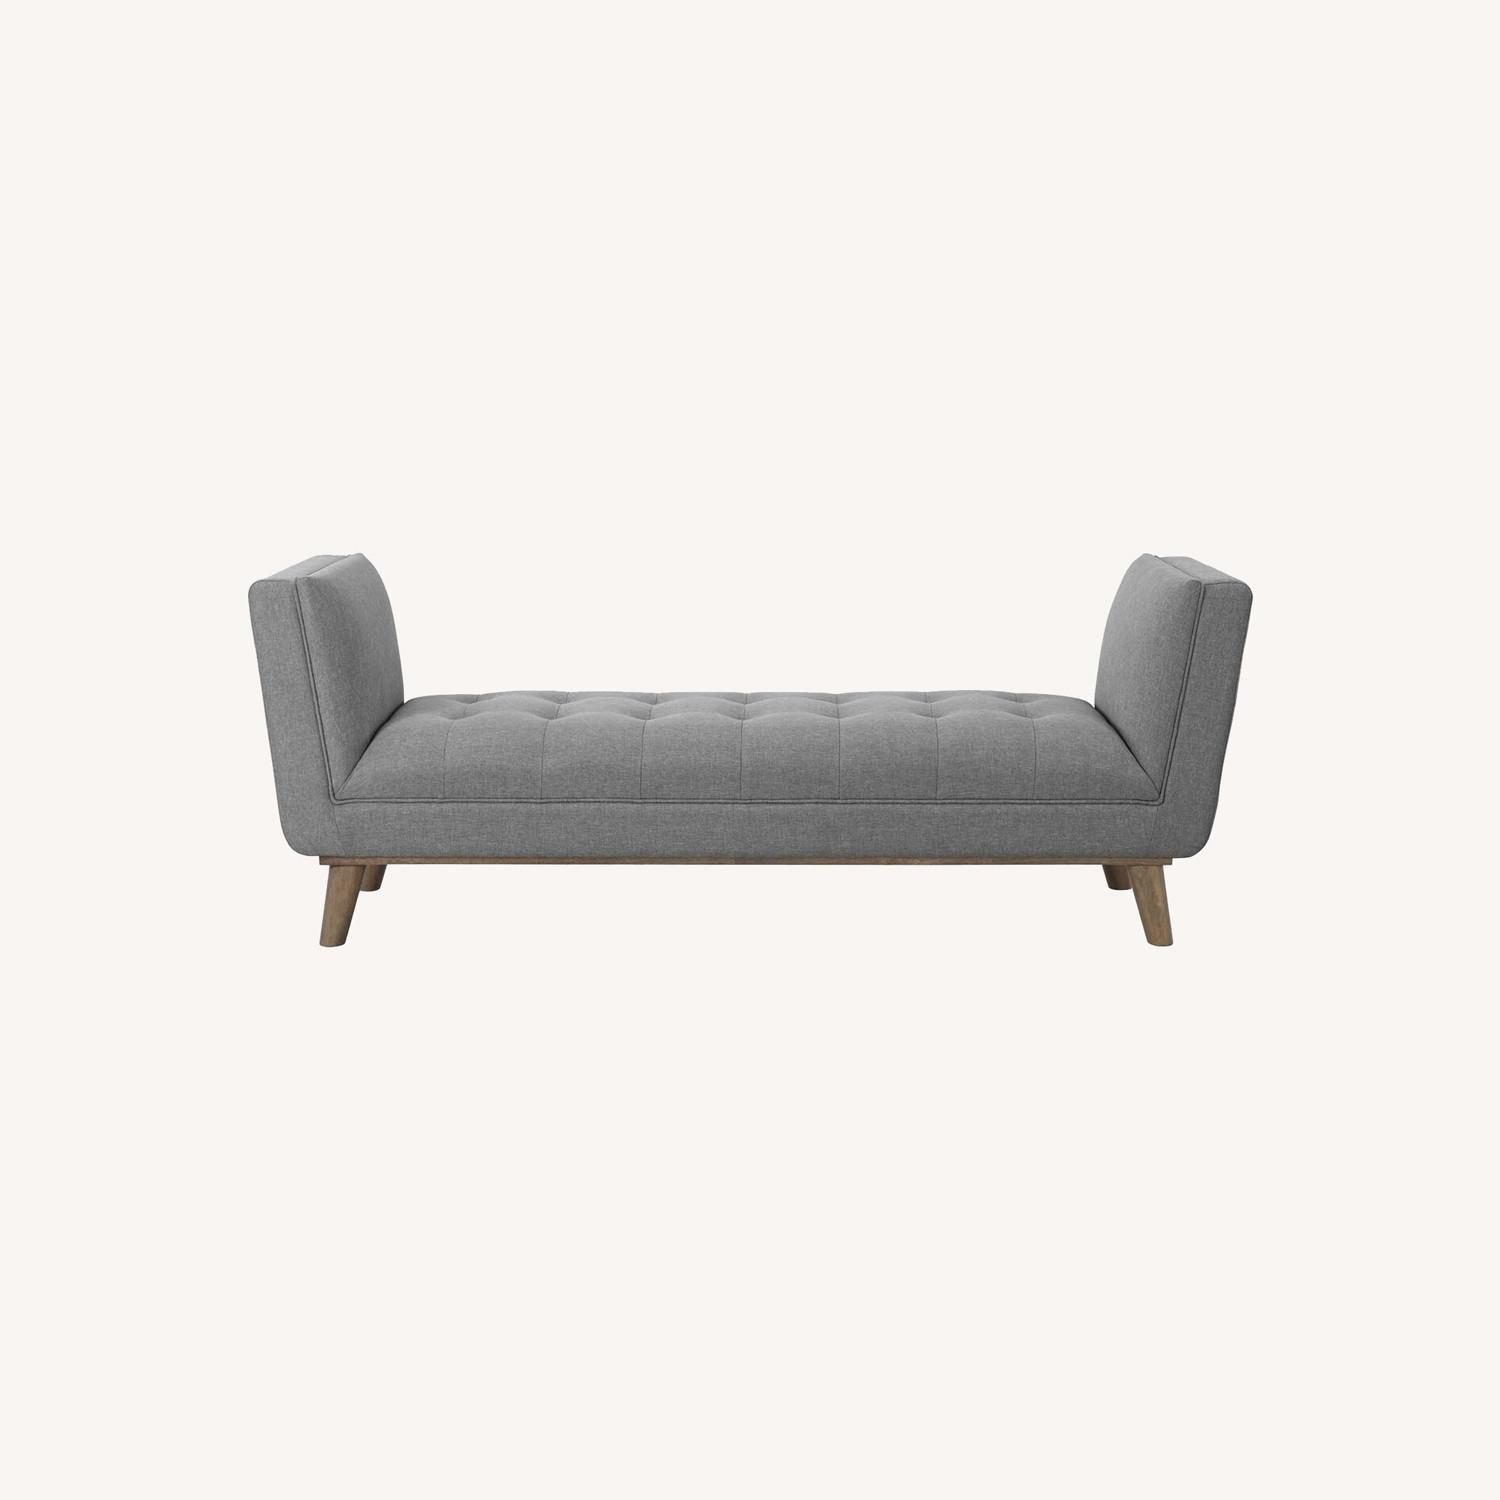 Accent Bench In Tufted Light Gray Fabric Finish - image-7